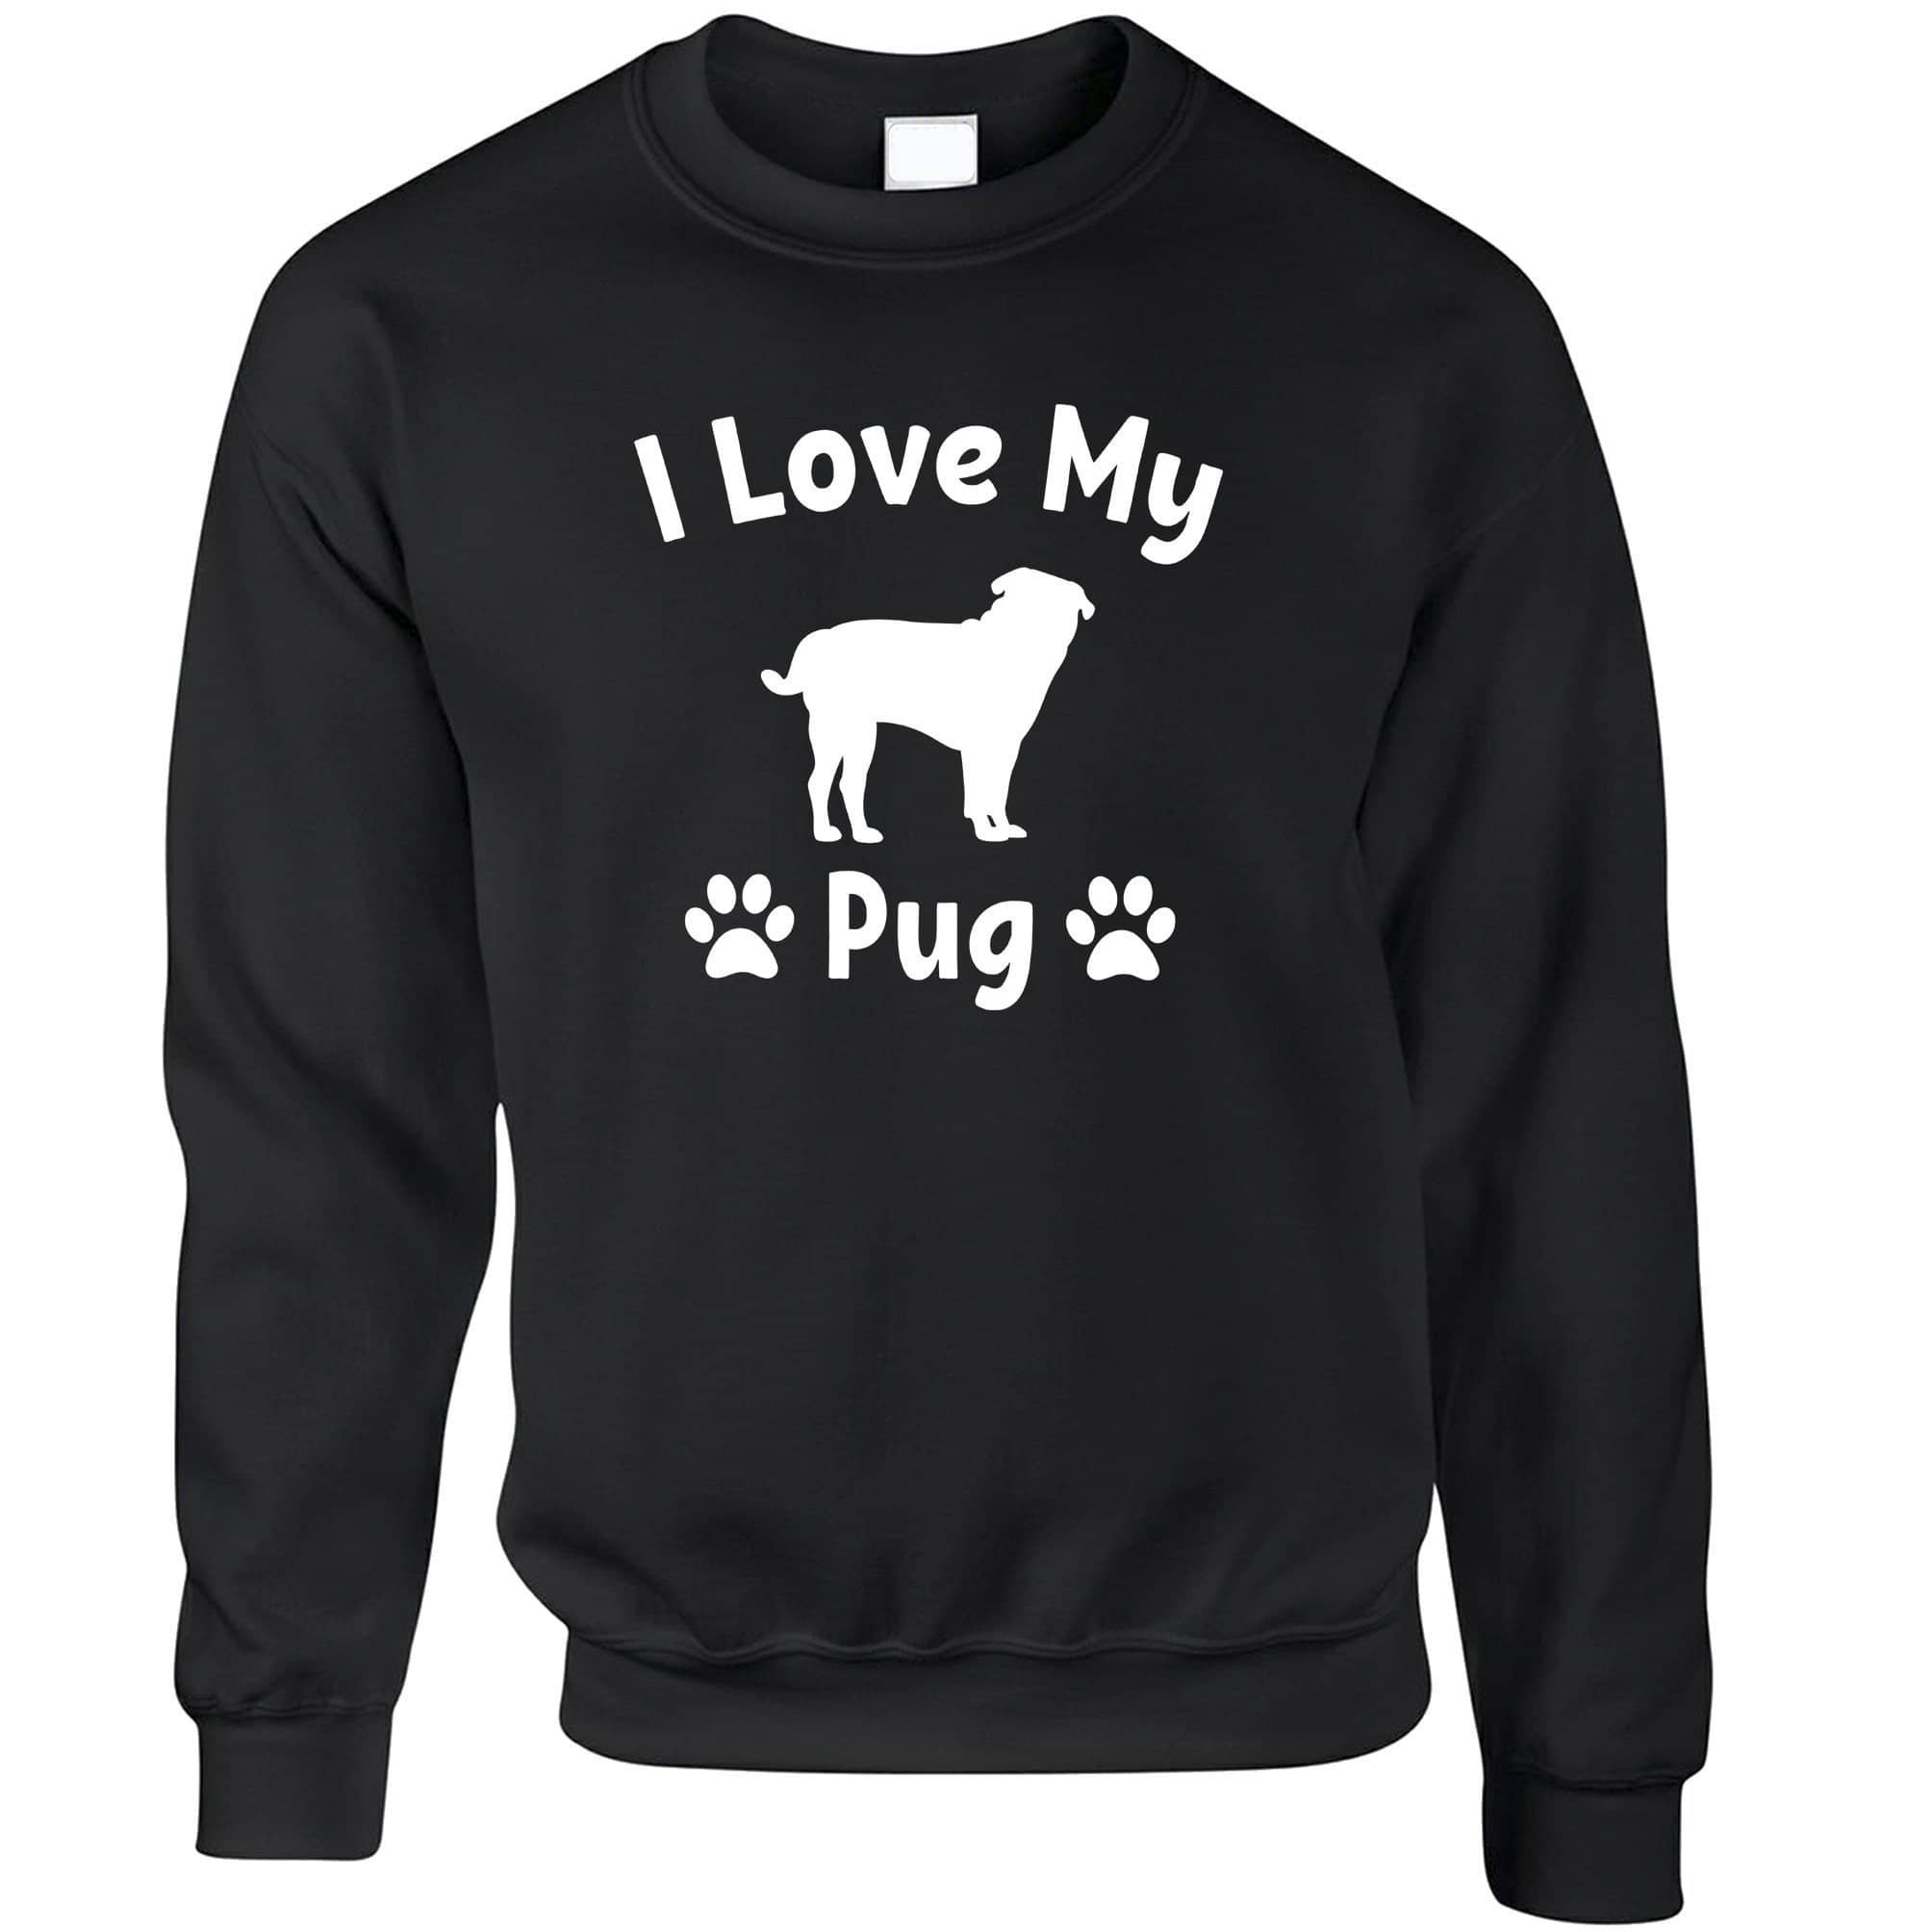 Dog Owner Jumper I Love My Pug Slogan Sweatshirt Sweater